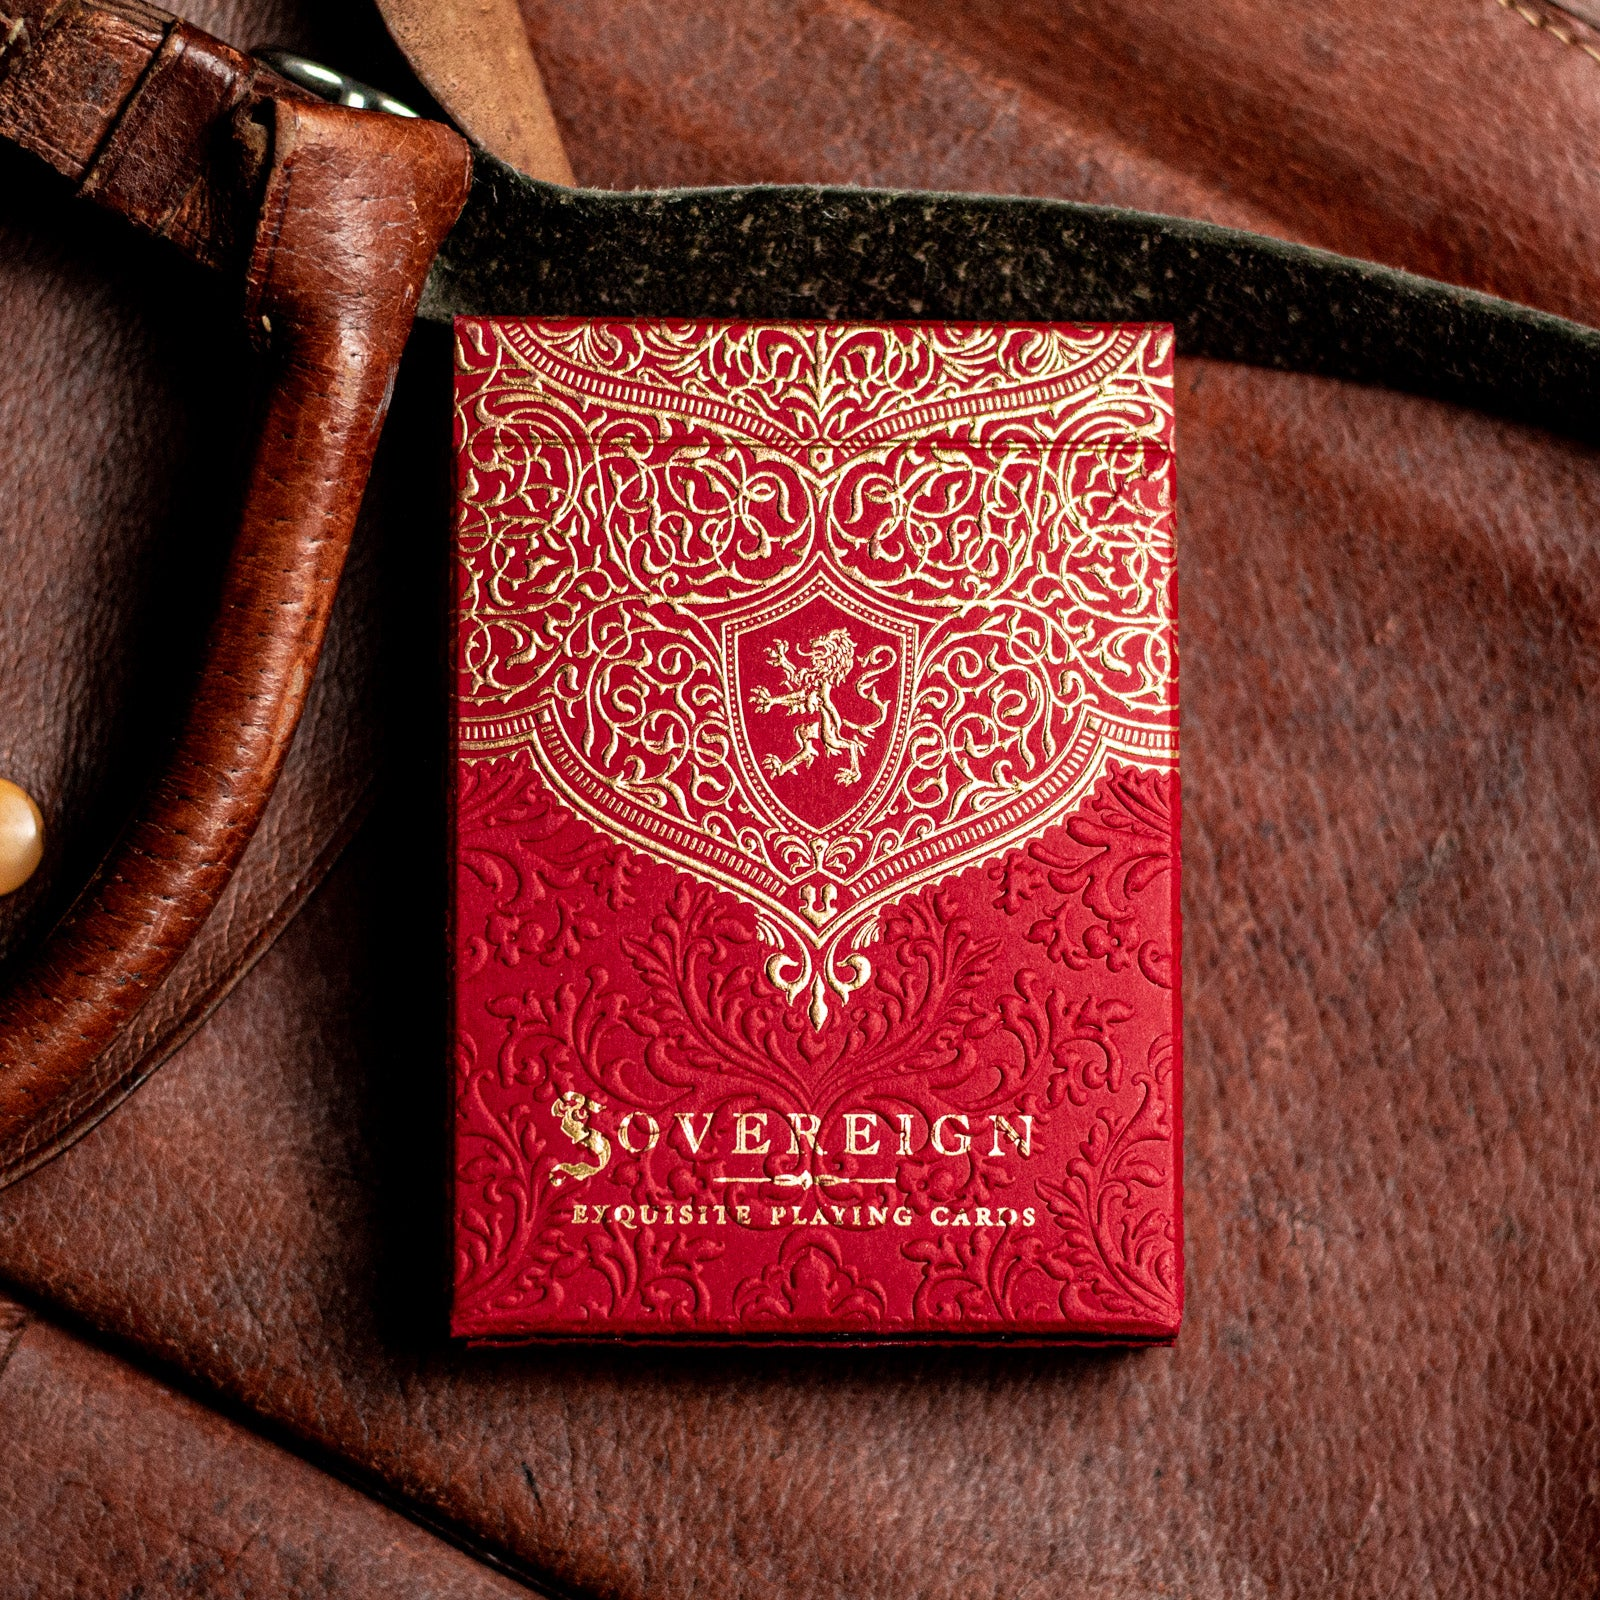 Sovereign Red Edition